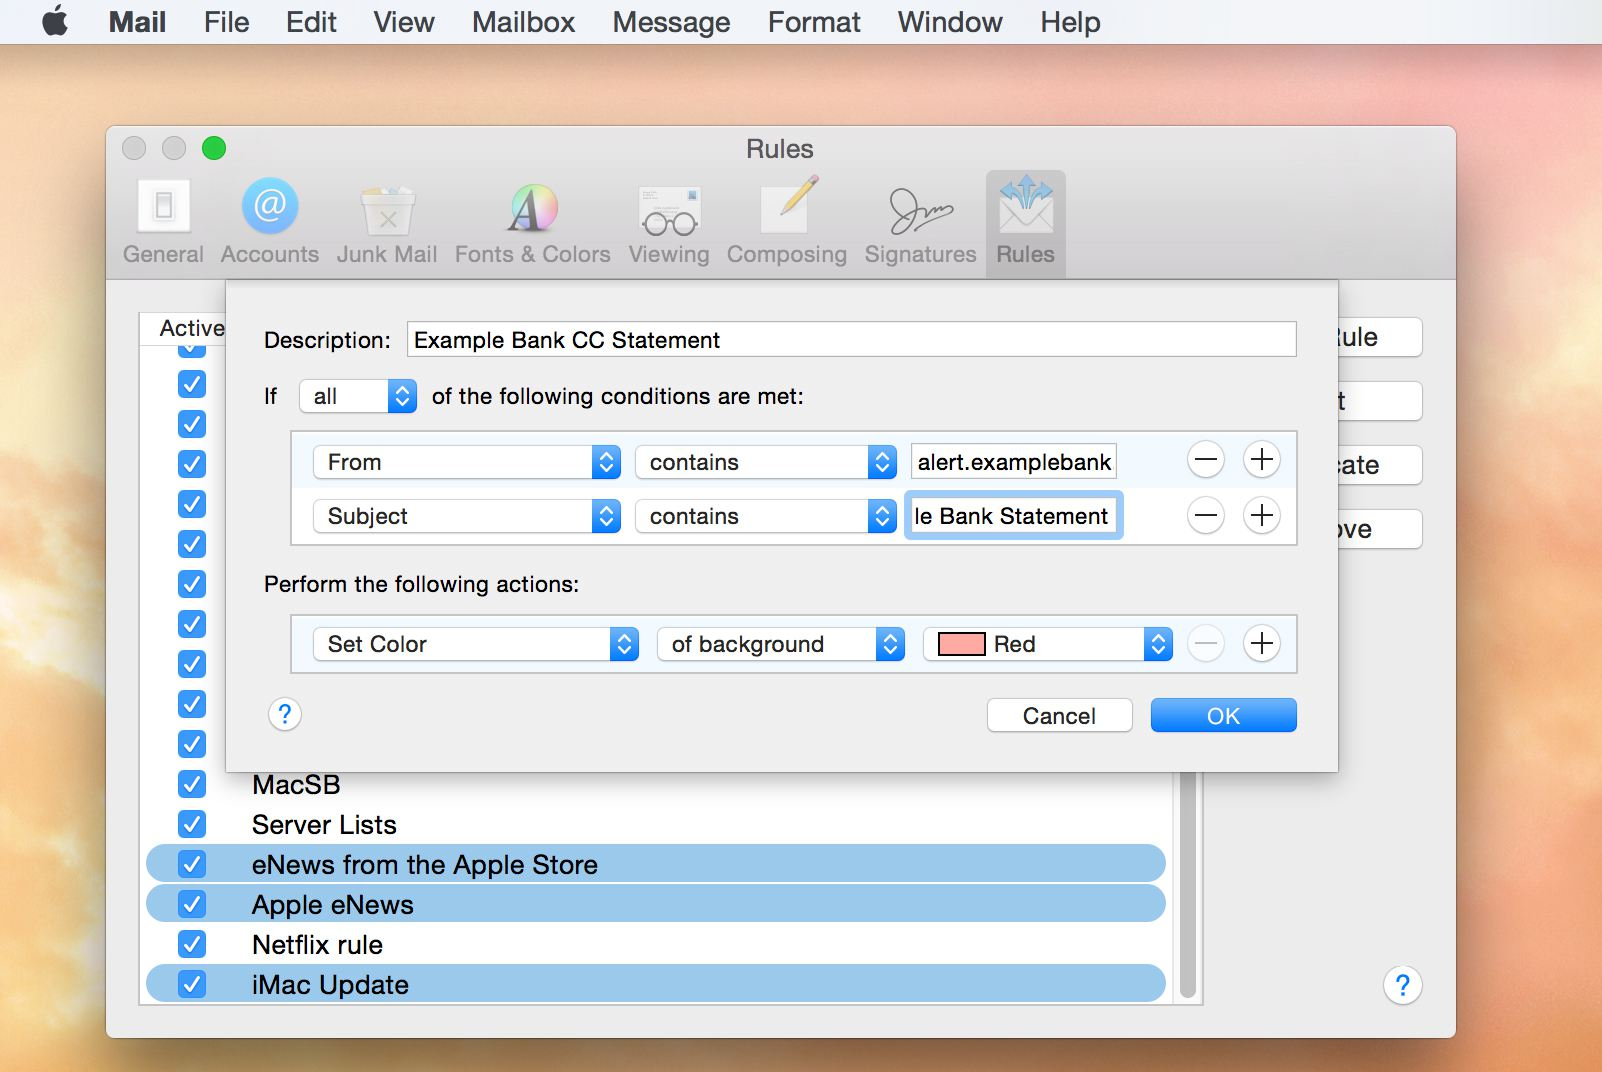 Apple Mail Rule Editor